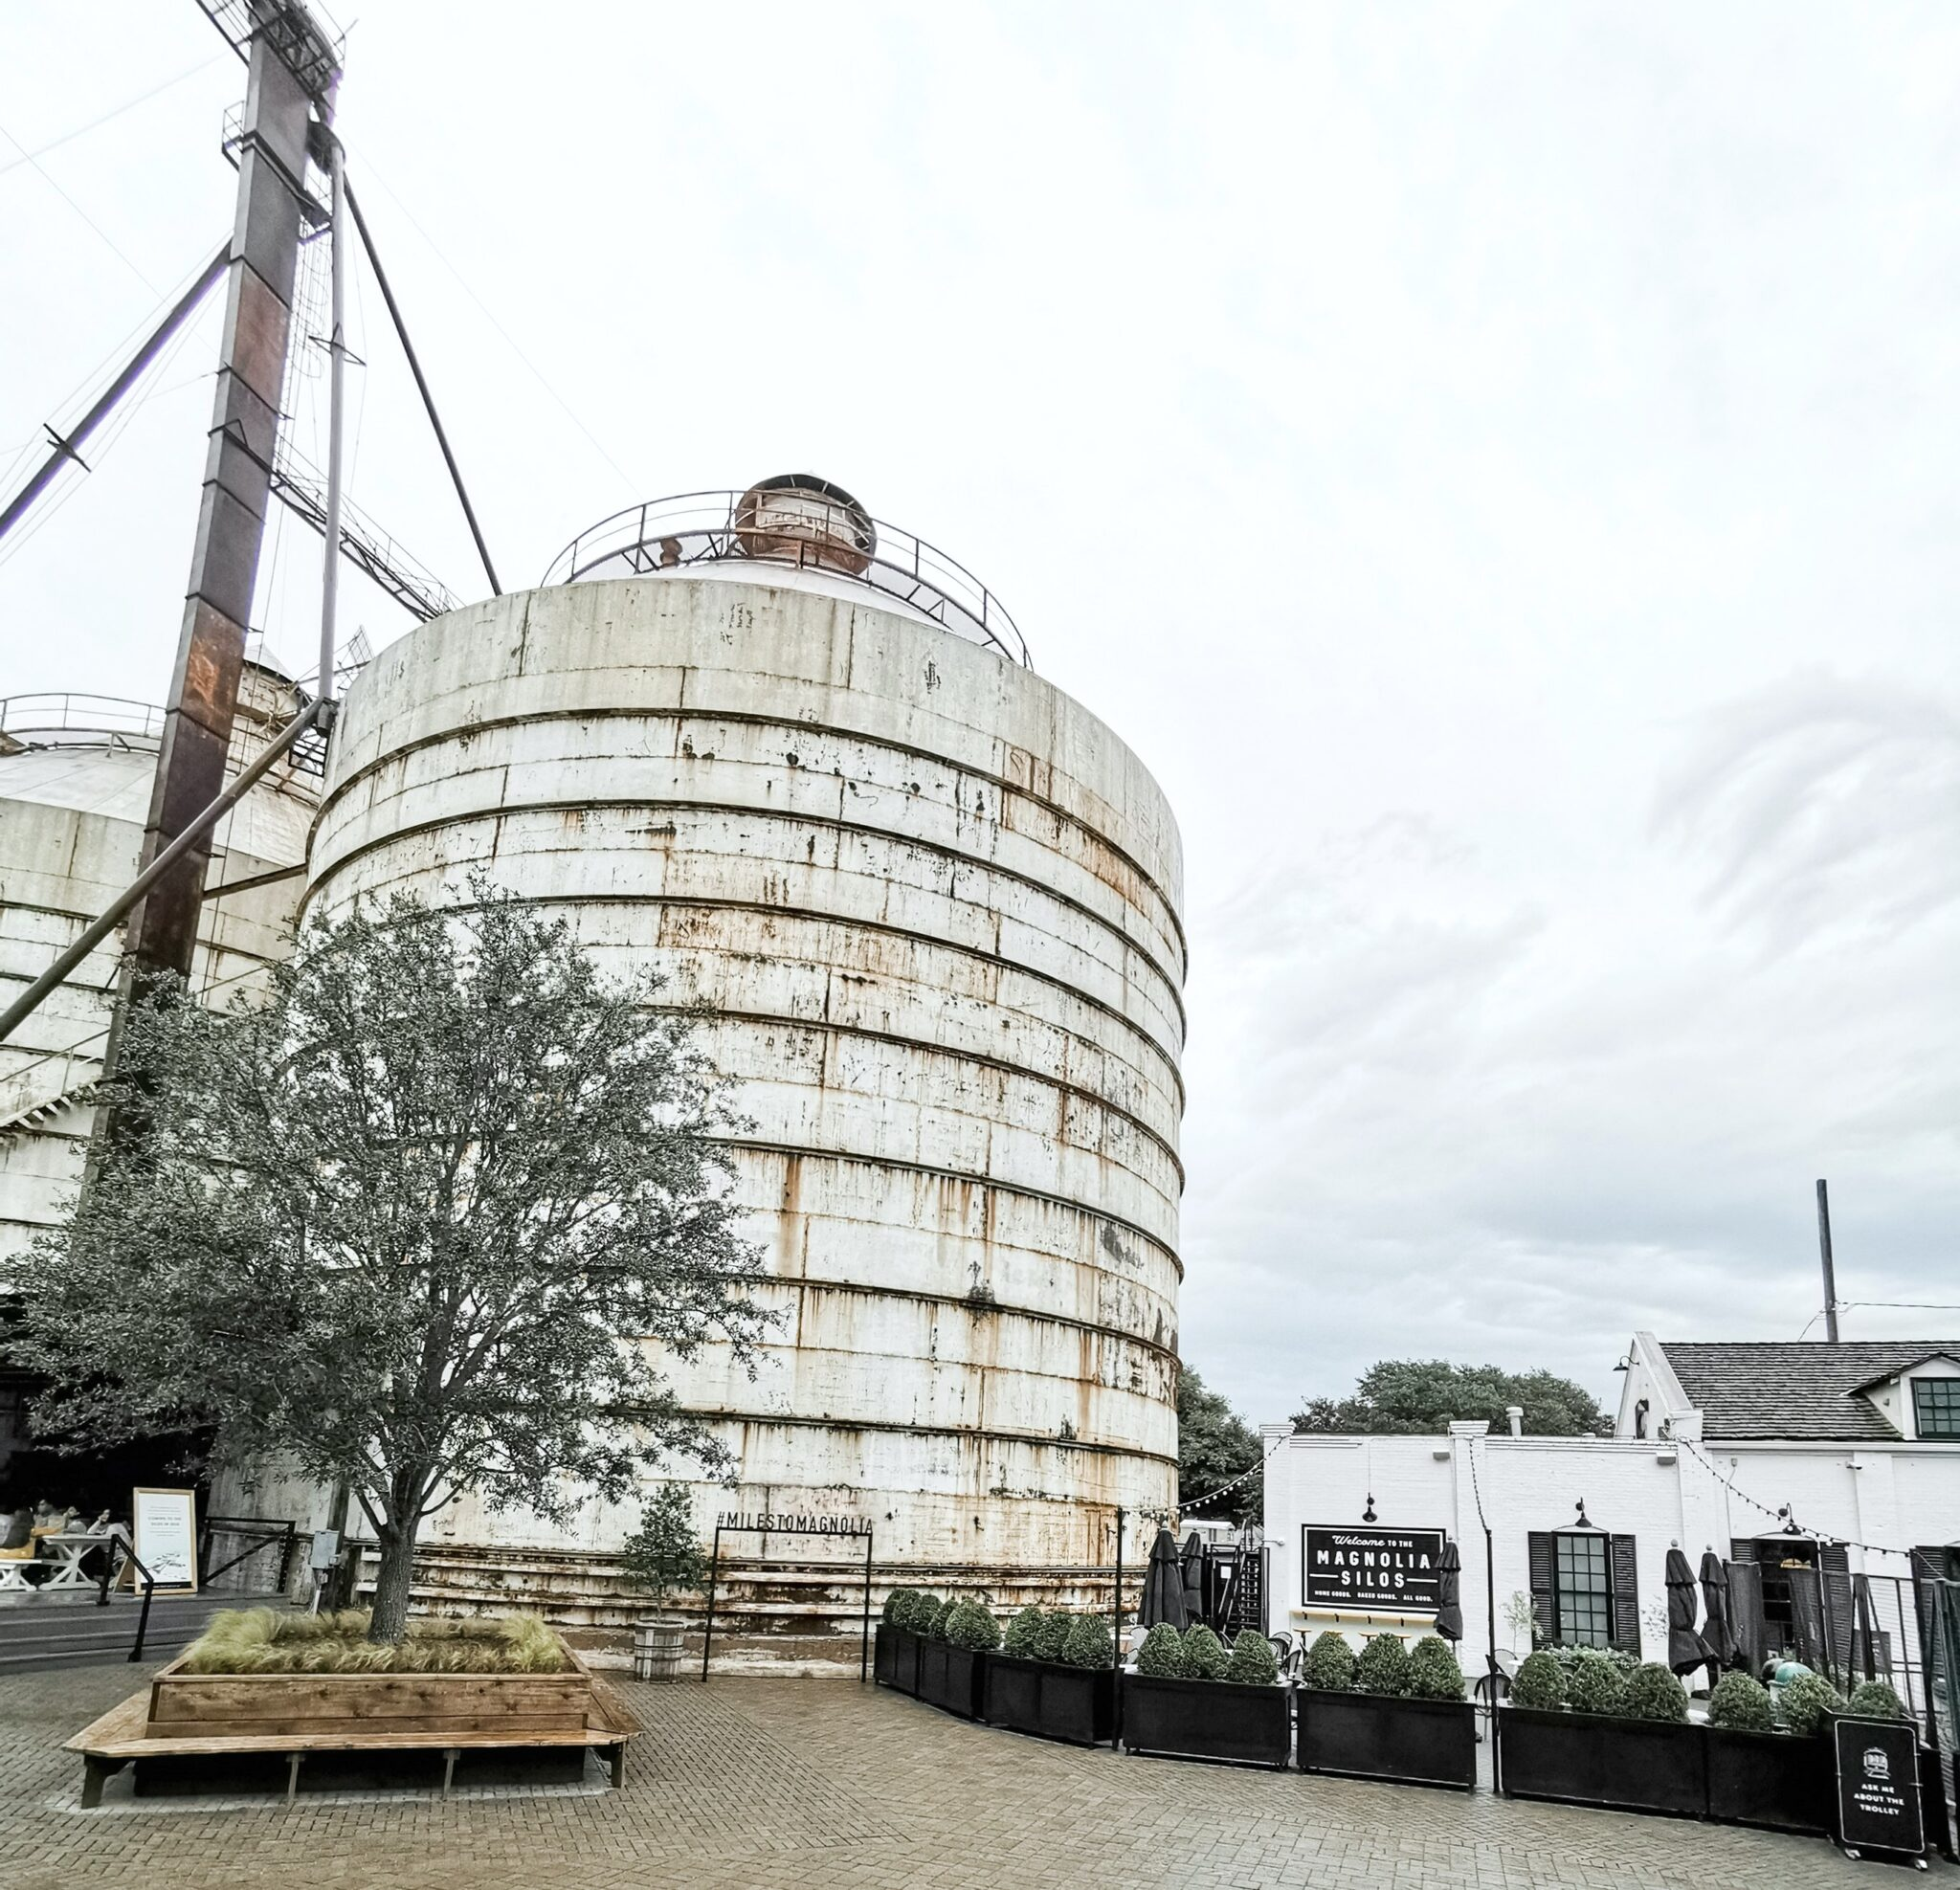 The Silos at Magnolia Market and the Silos Baking Co. in the background.